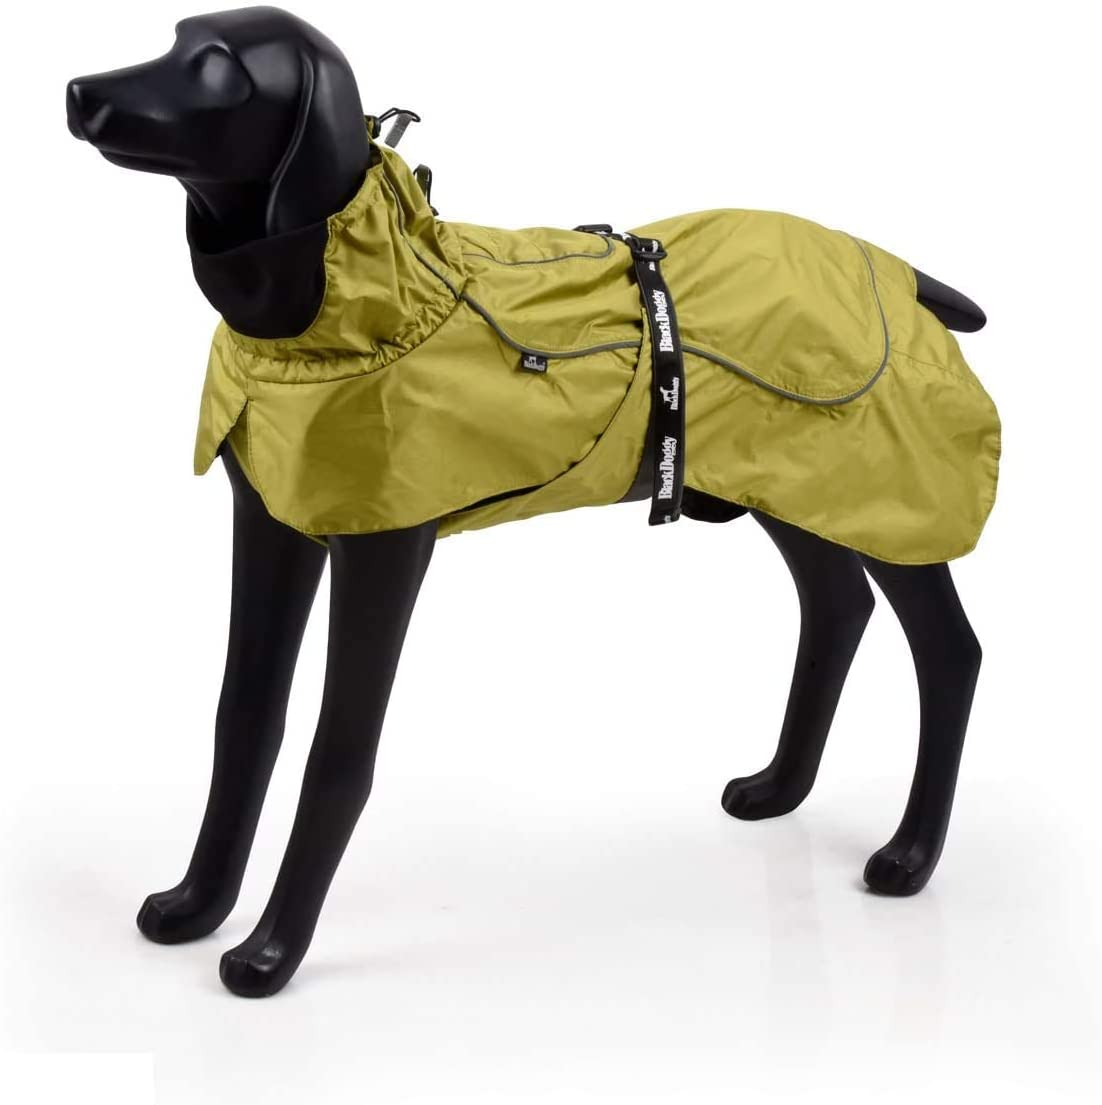 Dog Discount mail order Coats Max 42% OFF Waterproof Warm Outfit Winter Rain Clothes Jacket